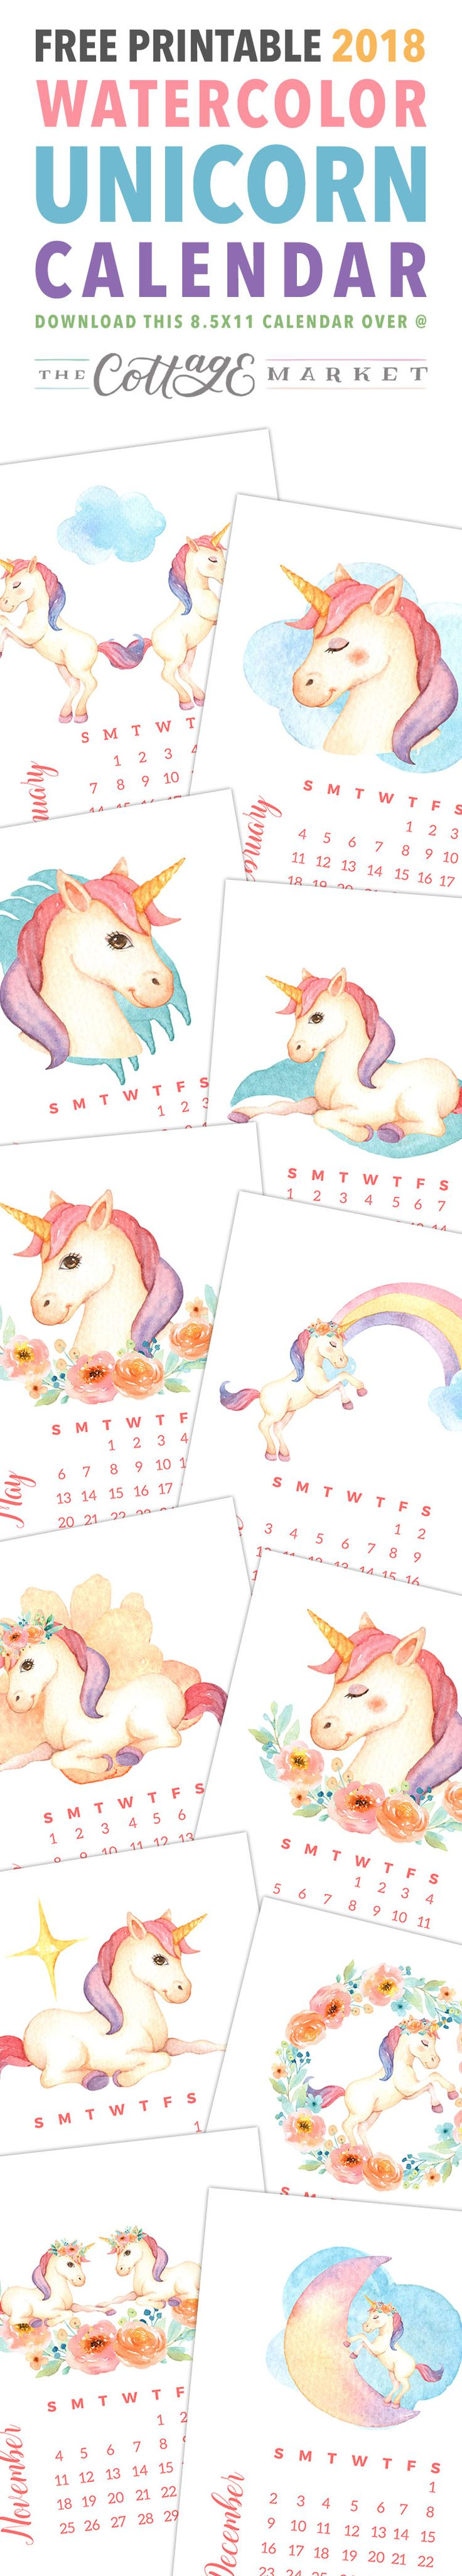 Free Printable 2018 Watercolor Unicorn Calendar